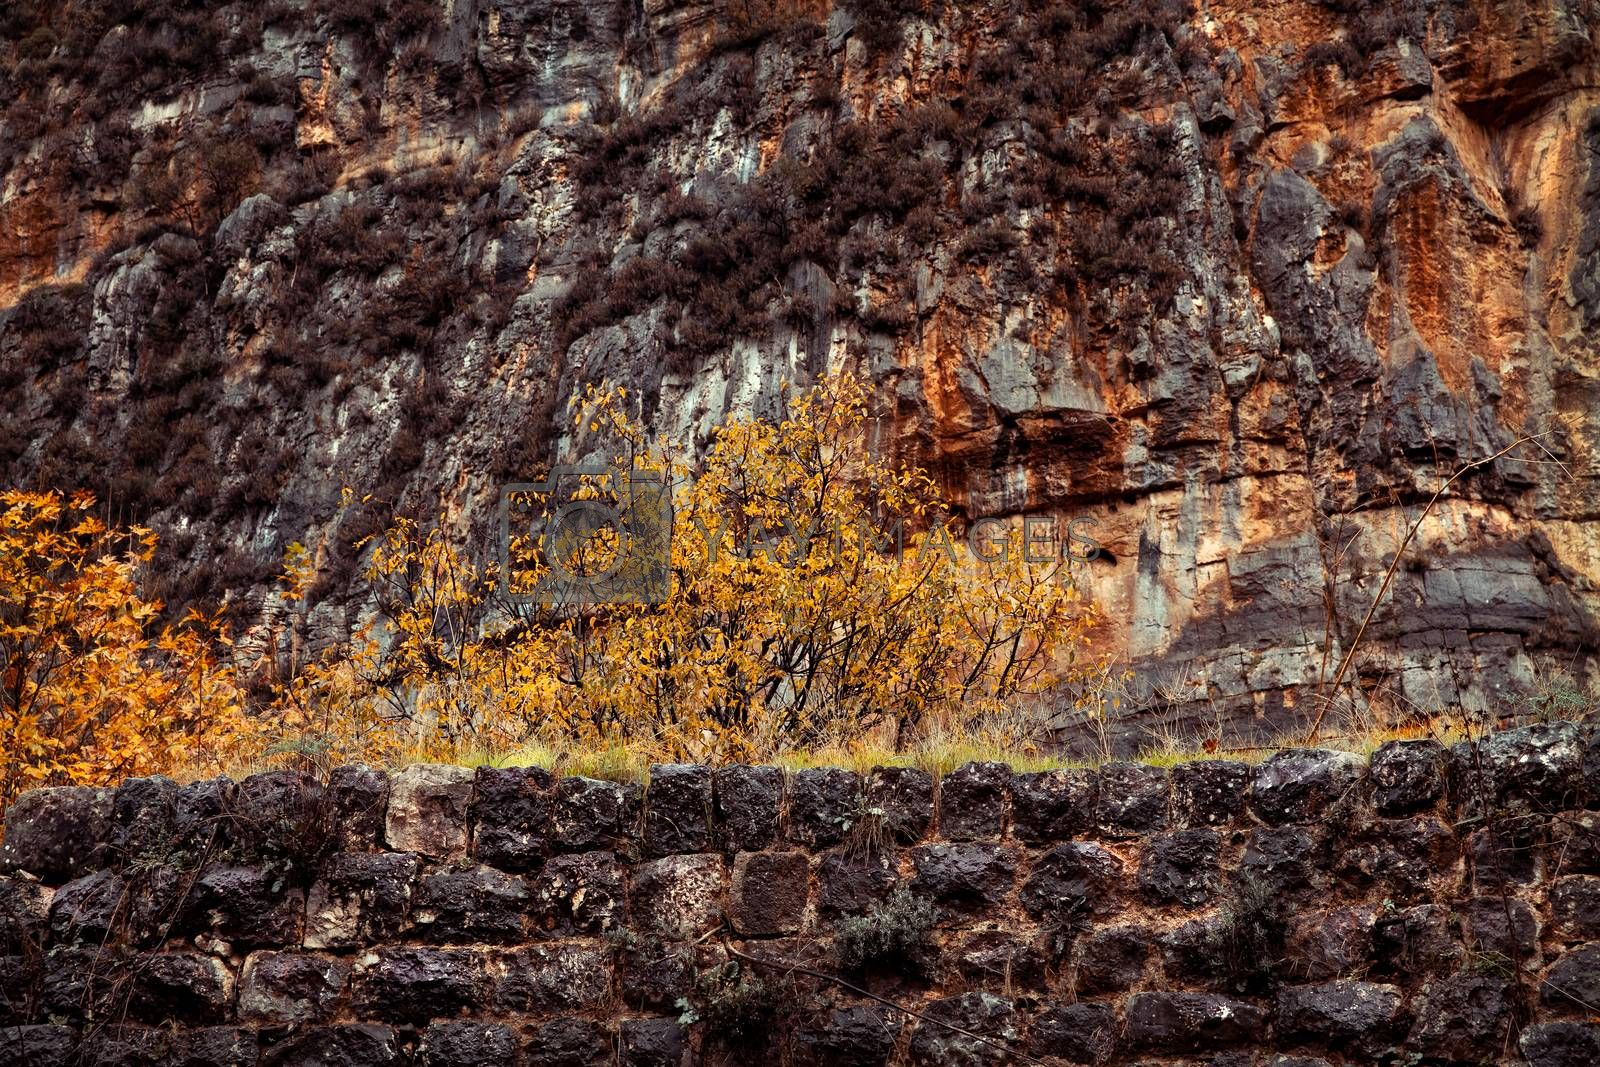 Mountain range covered with dry plants, abstract natural background, autumn season nature